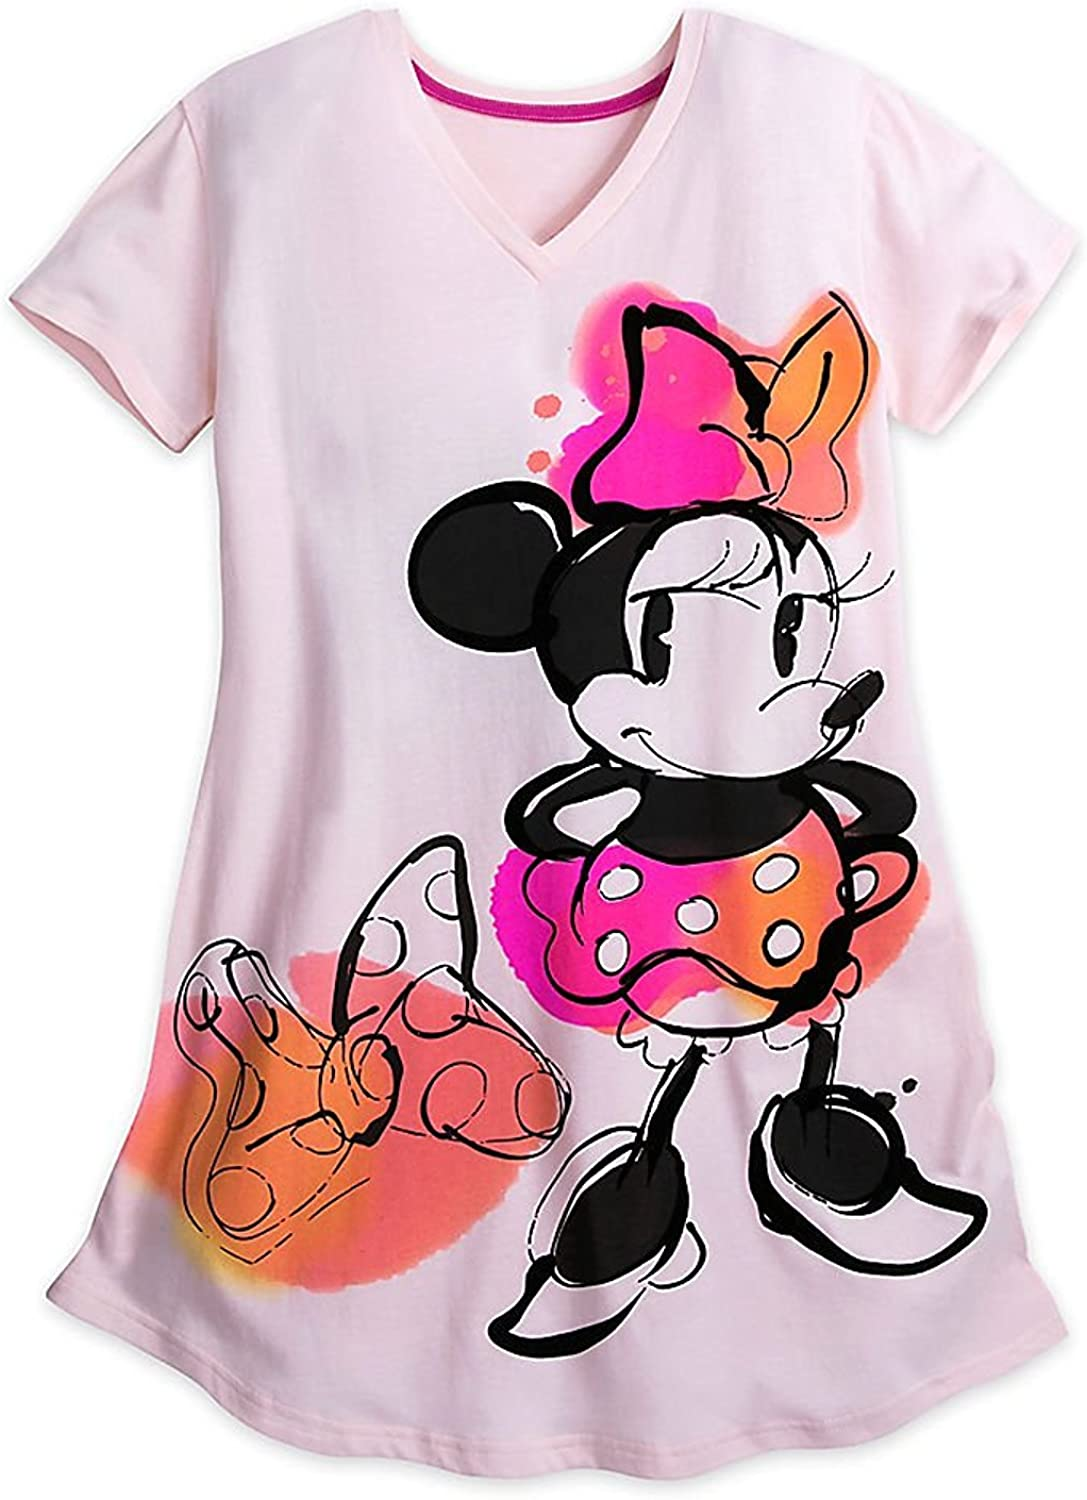 Disney Minnie Mouse Nightshirt for Adults